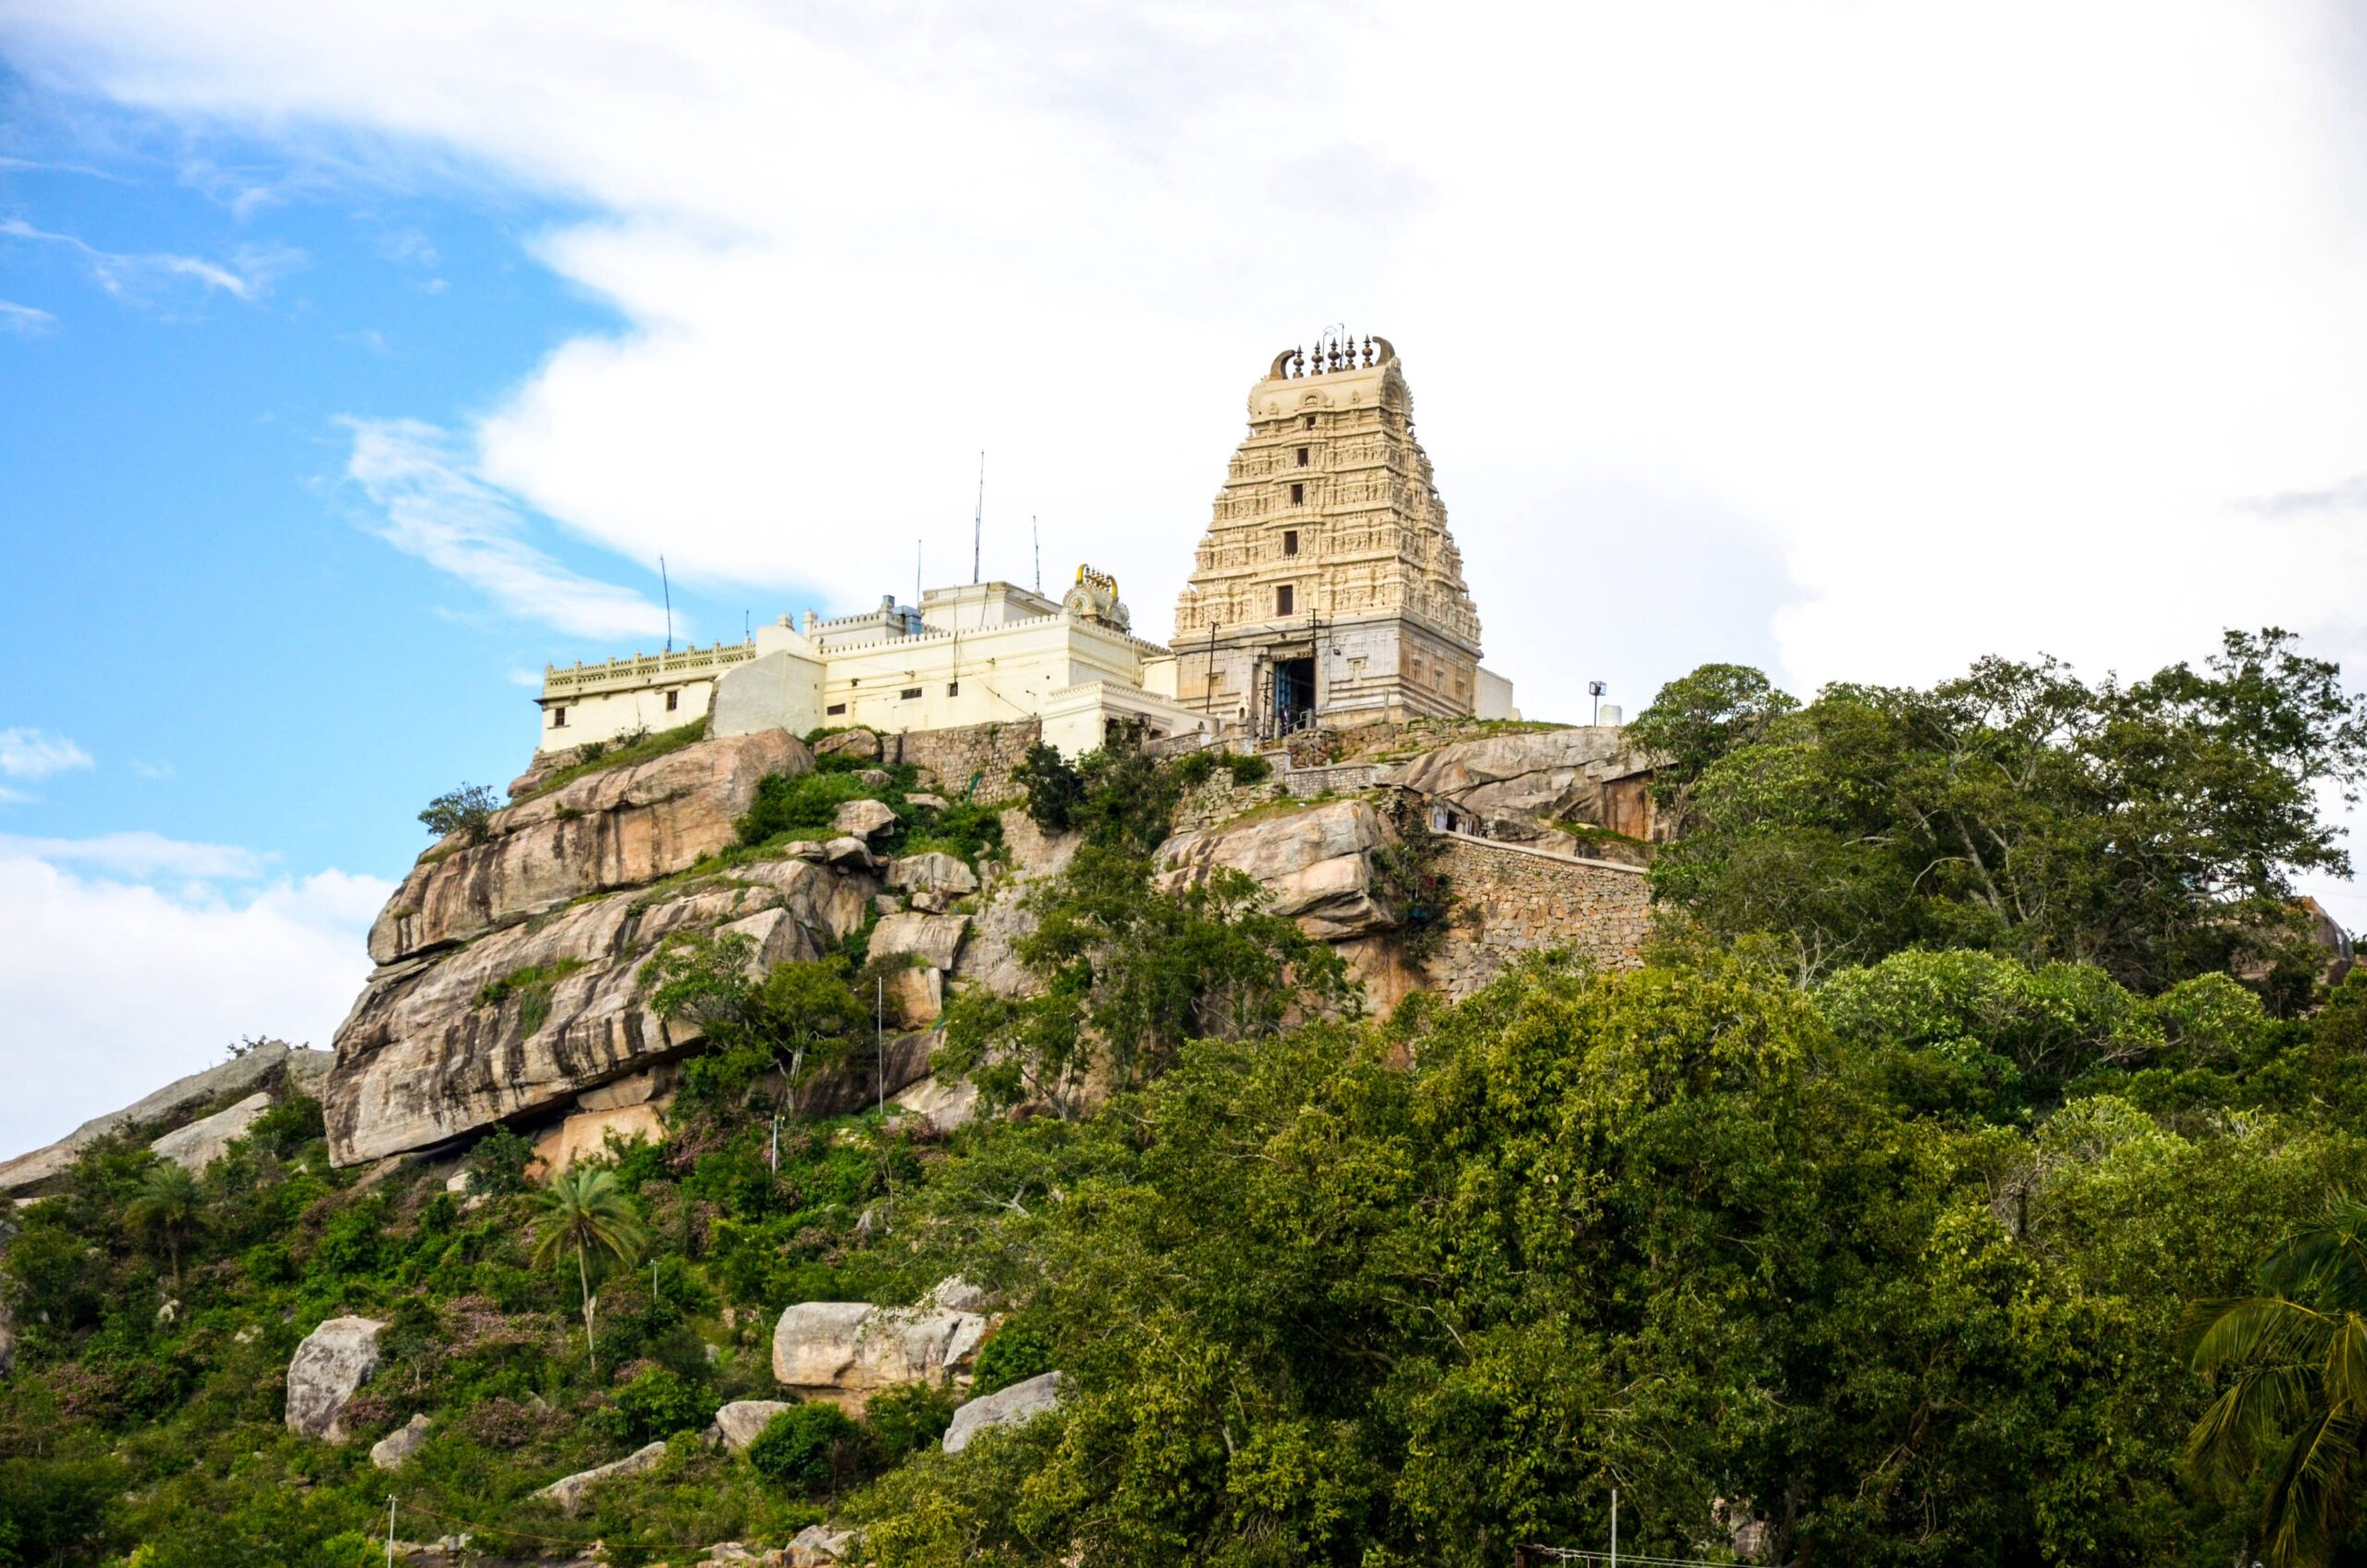 Melukote Day Trip